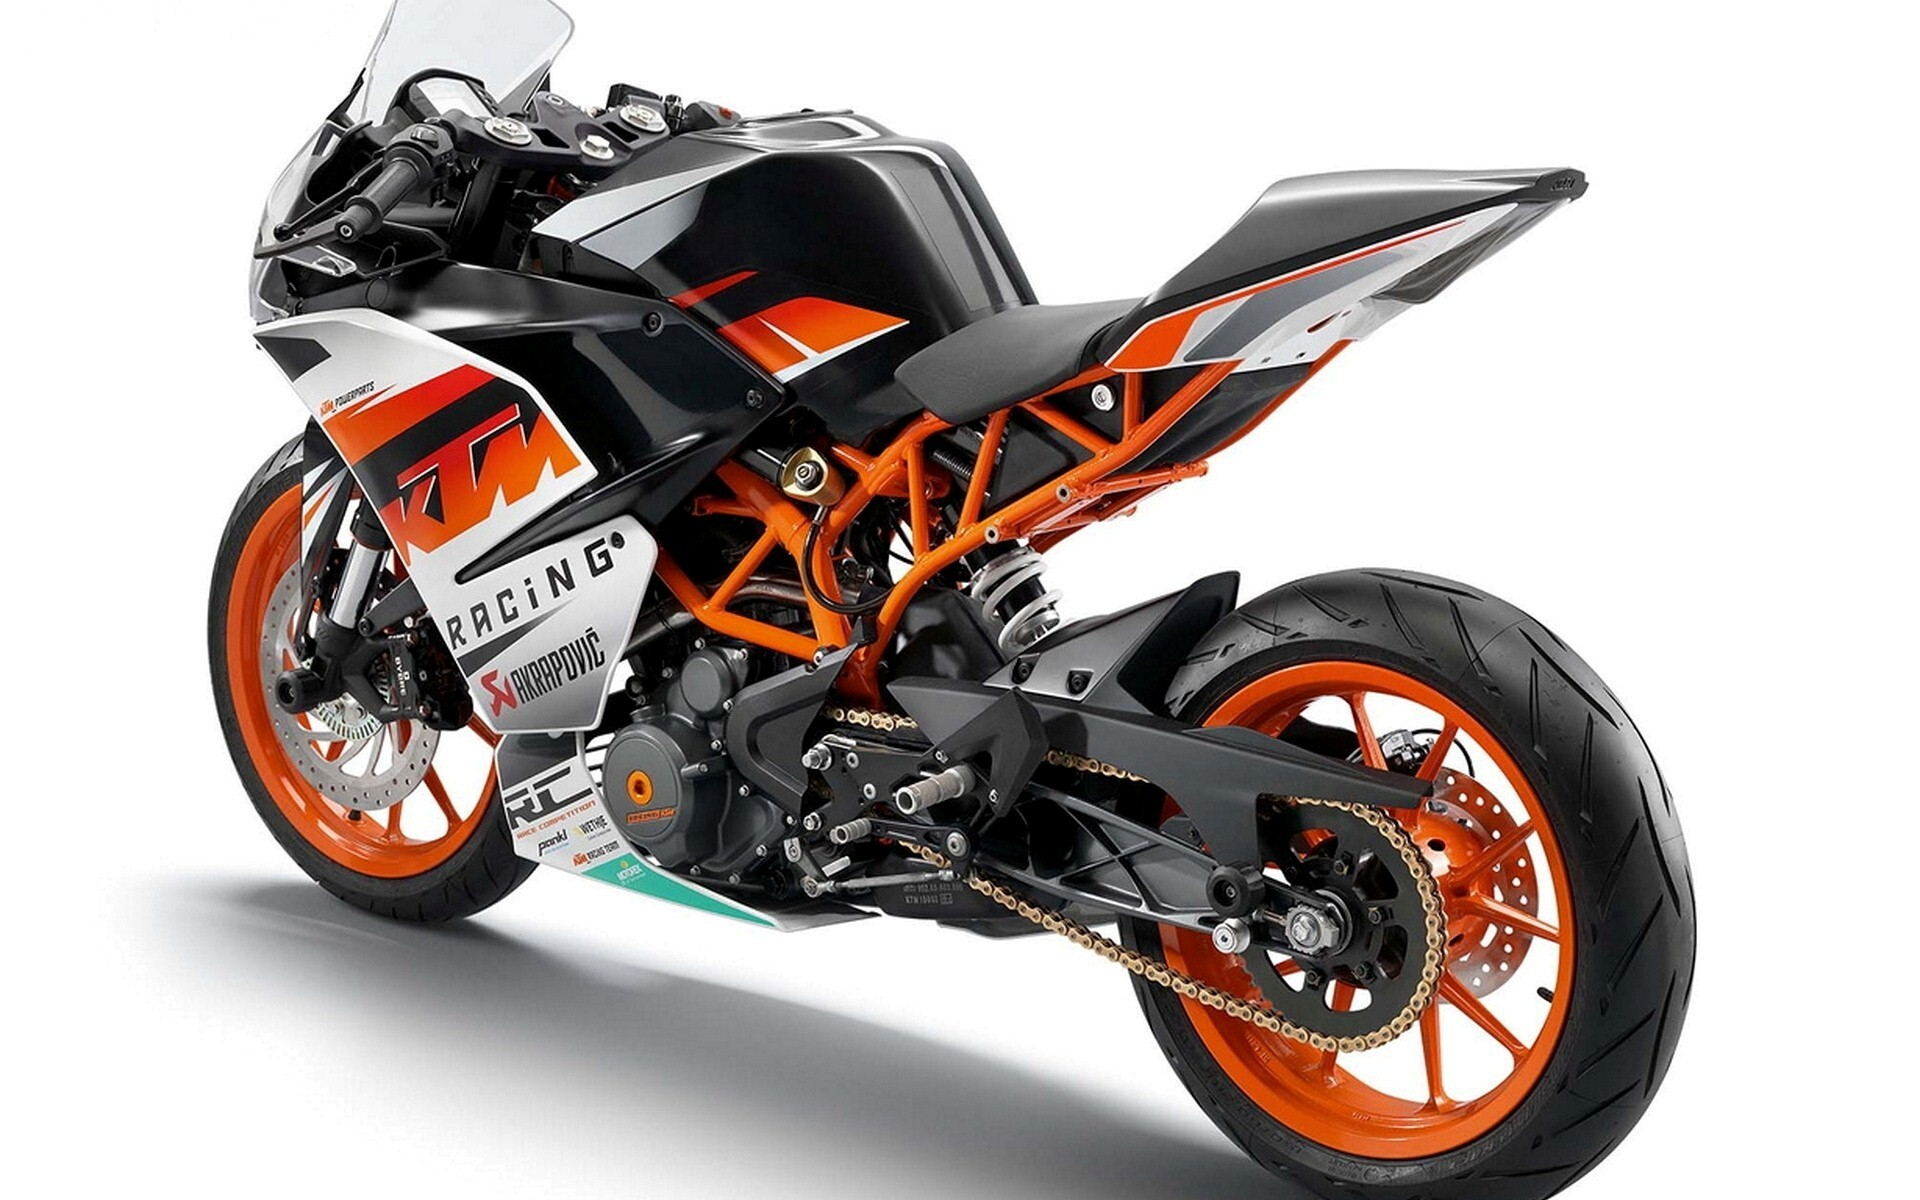 Ktm motorcycles hd wallpapers free wallaper downloads ktm sport - Amazing Orange Sport Bike Hd Wallpaper